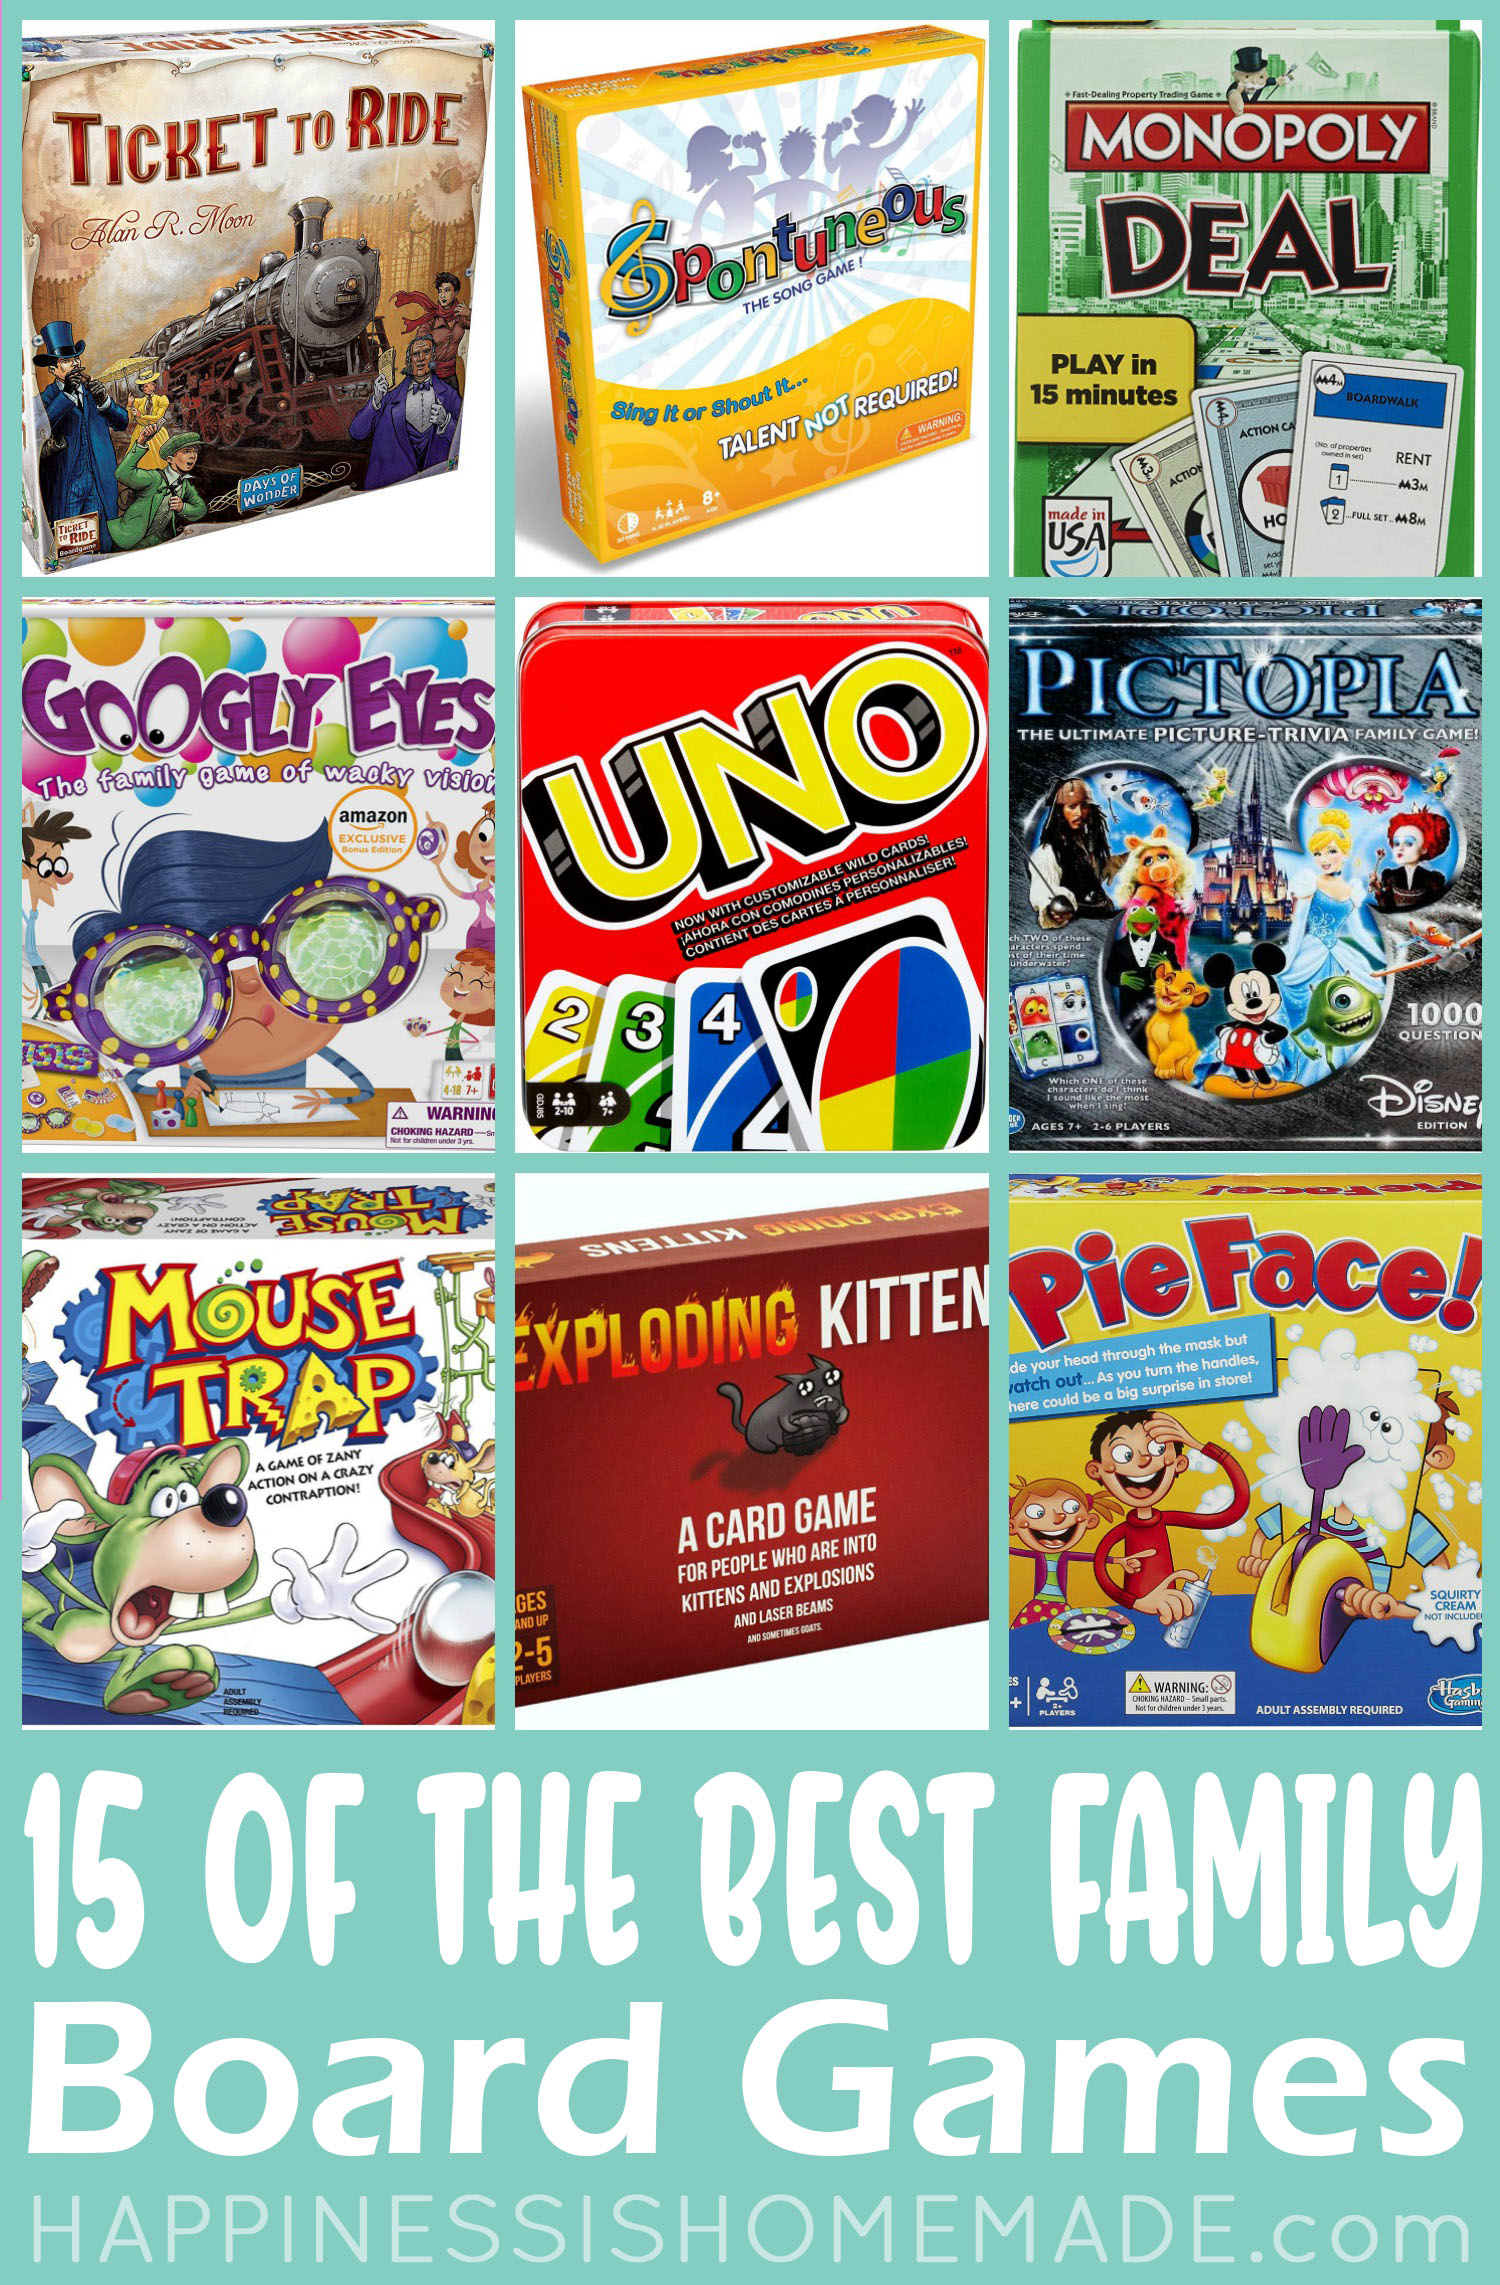 15 of The Best Family Board Games - Happiness is Homemade